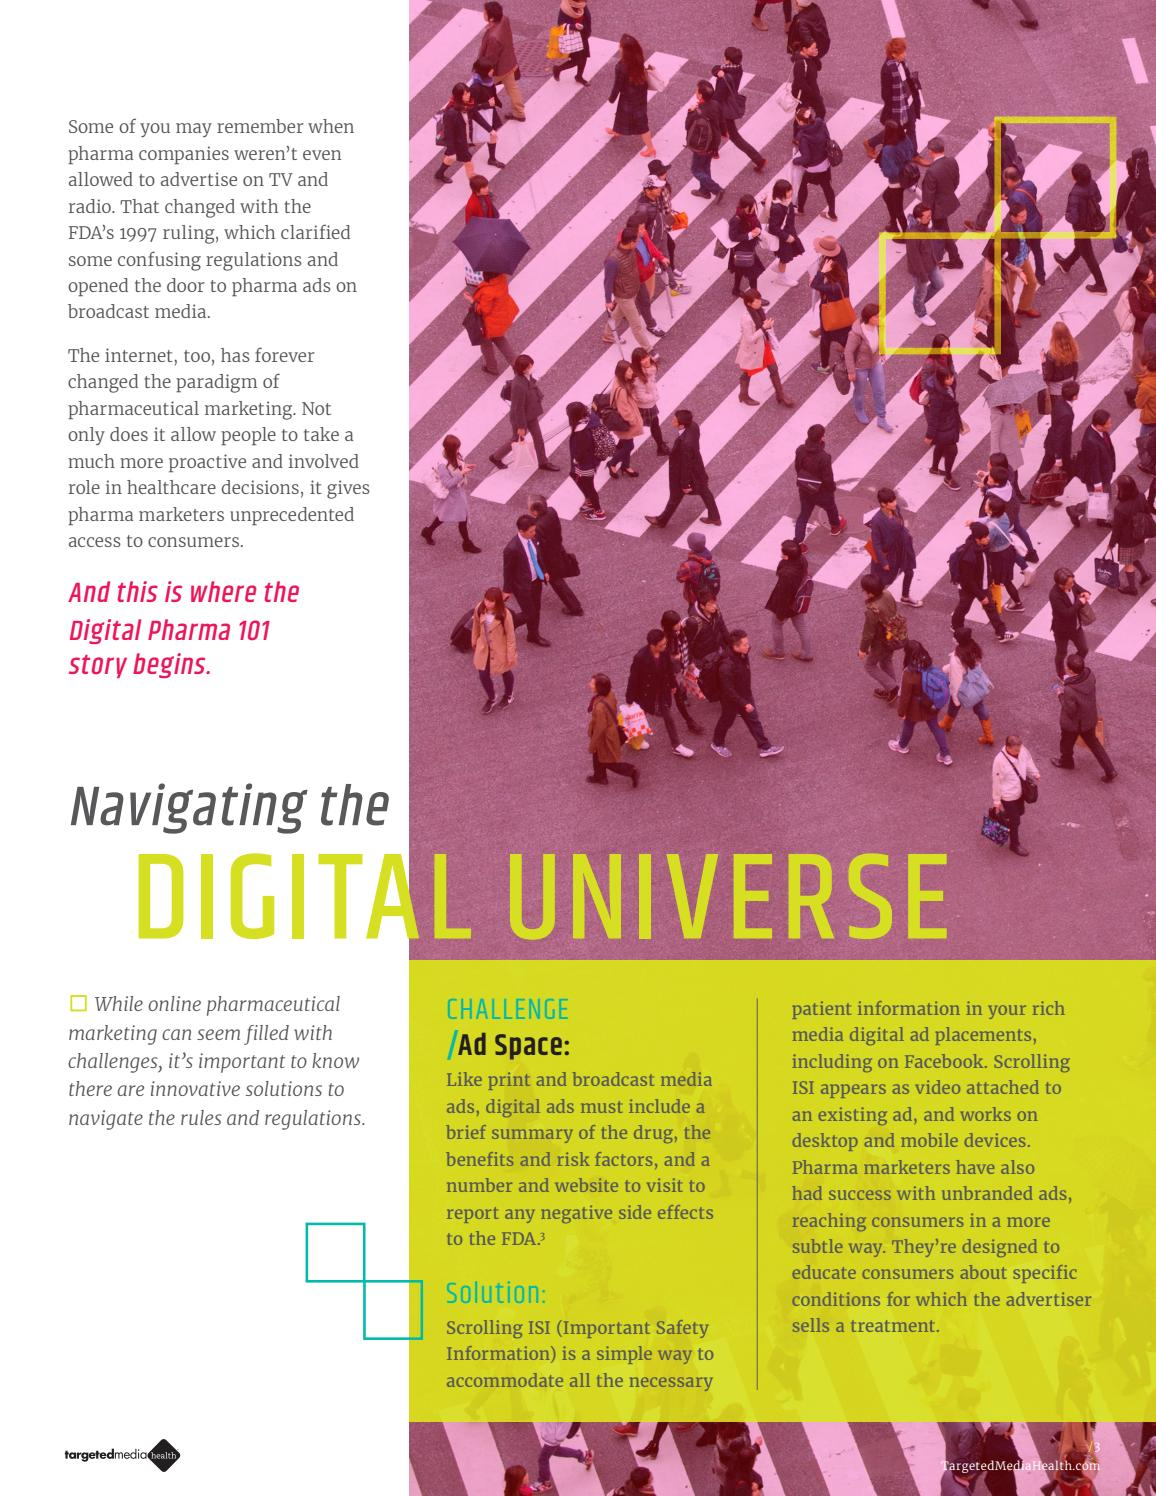 Digital Marketing 101/Pharma by MNI Targeted Media - issuu